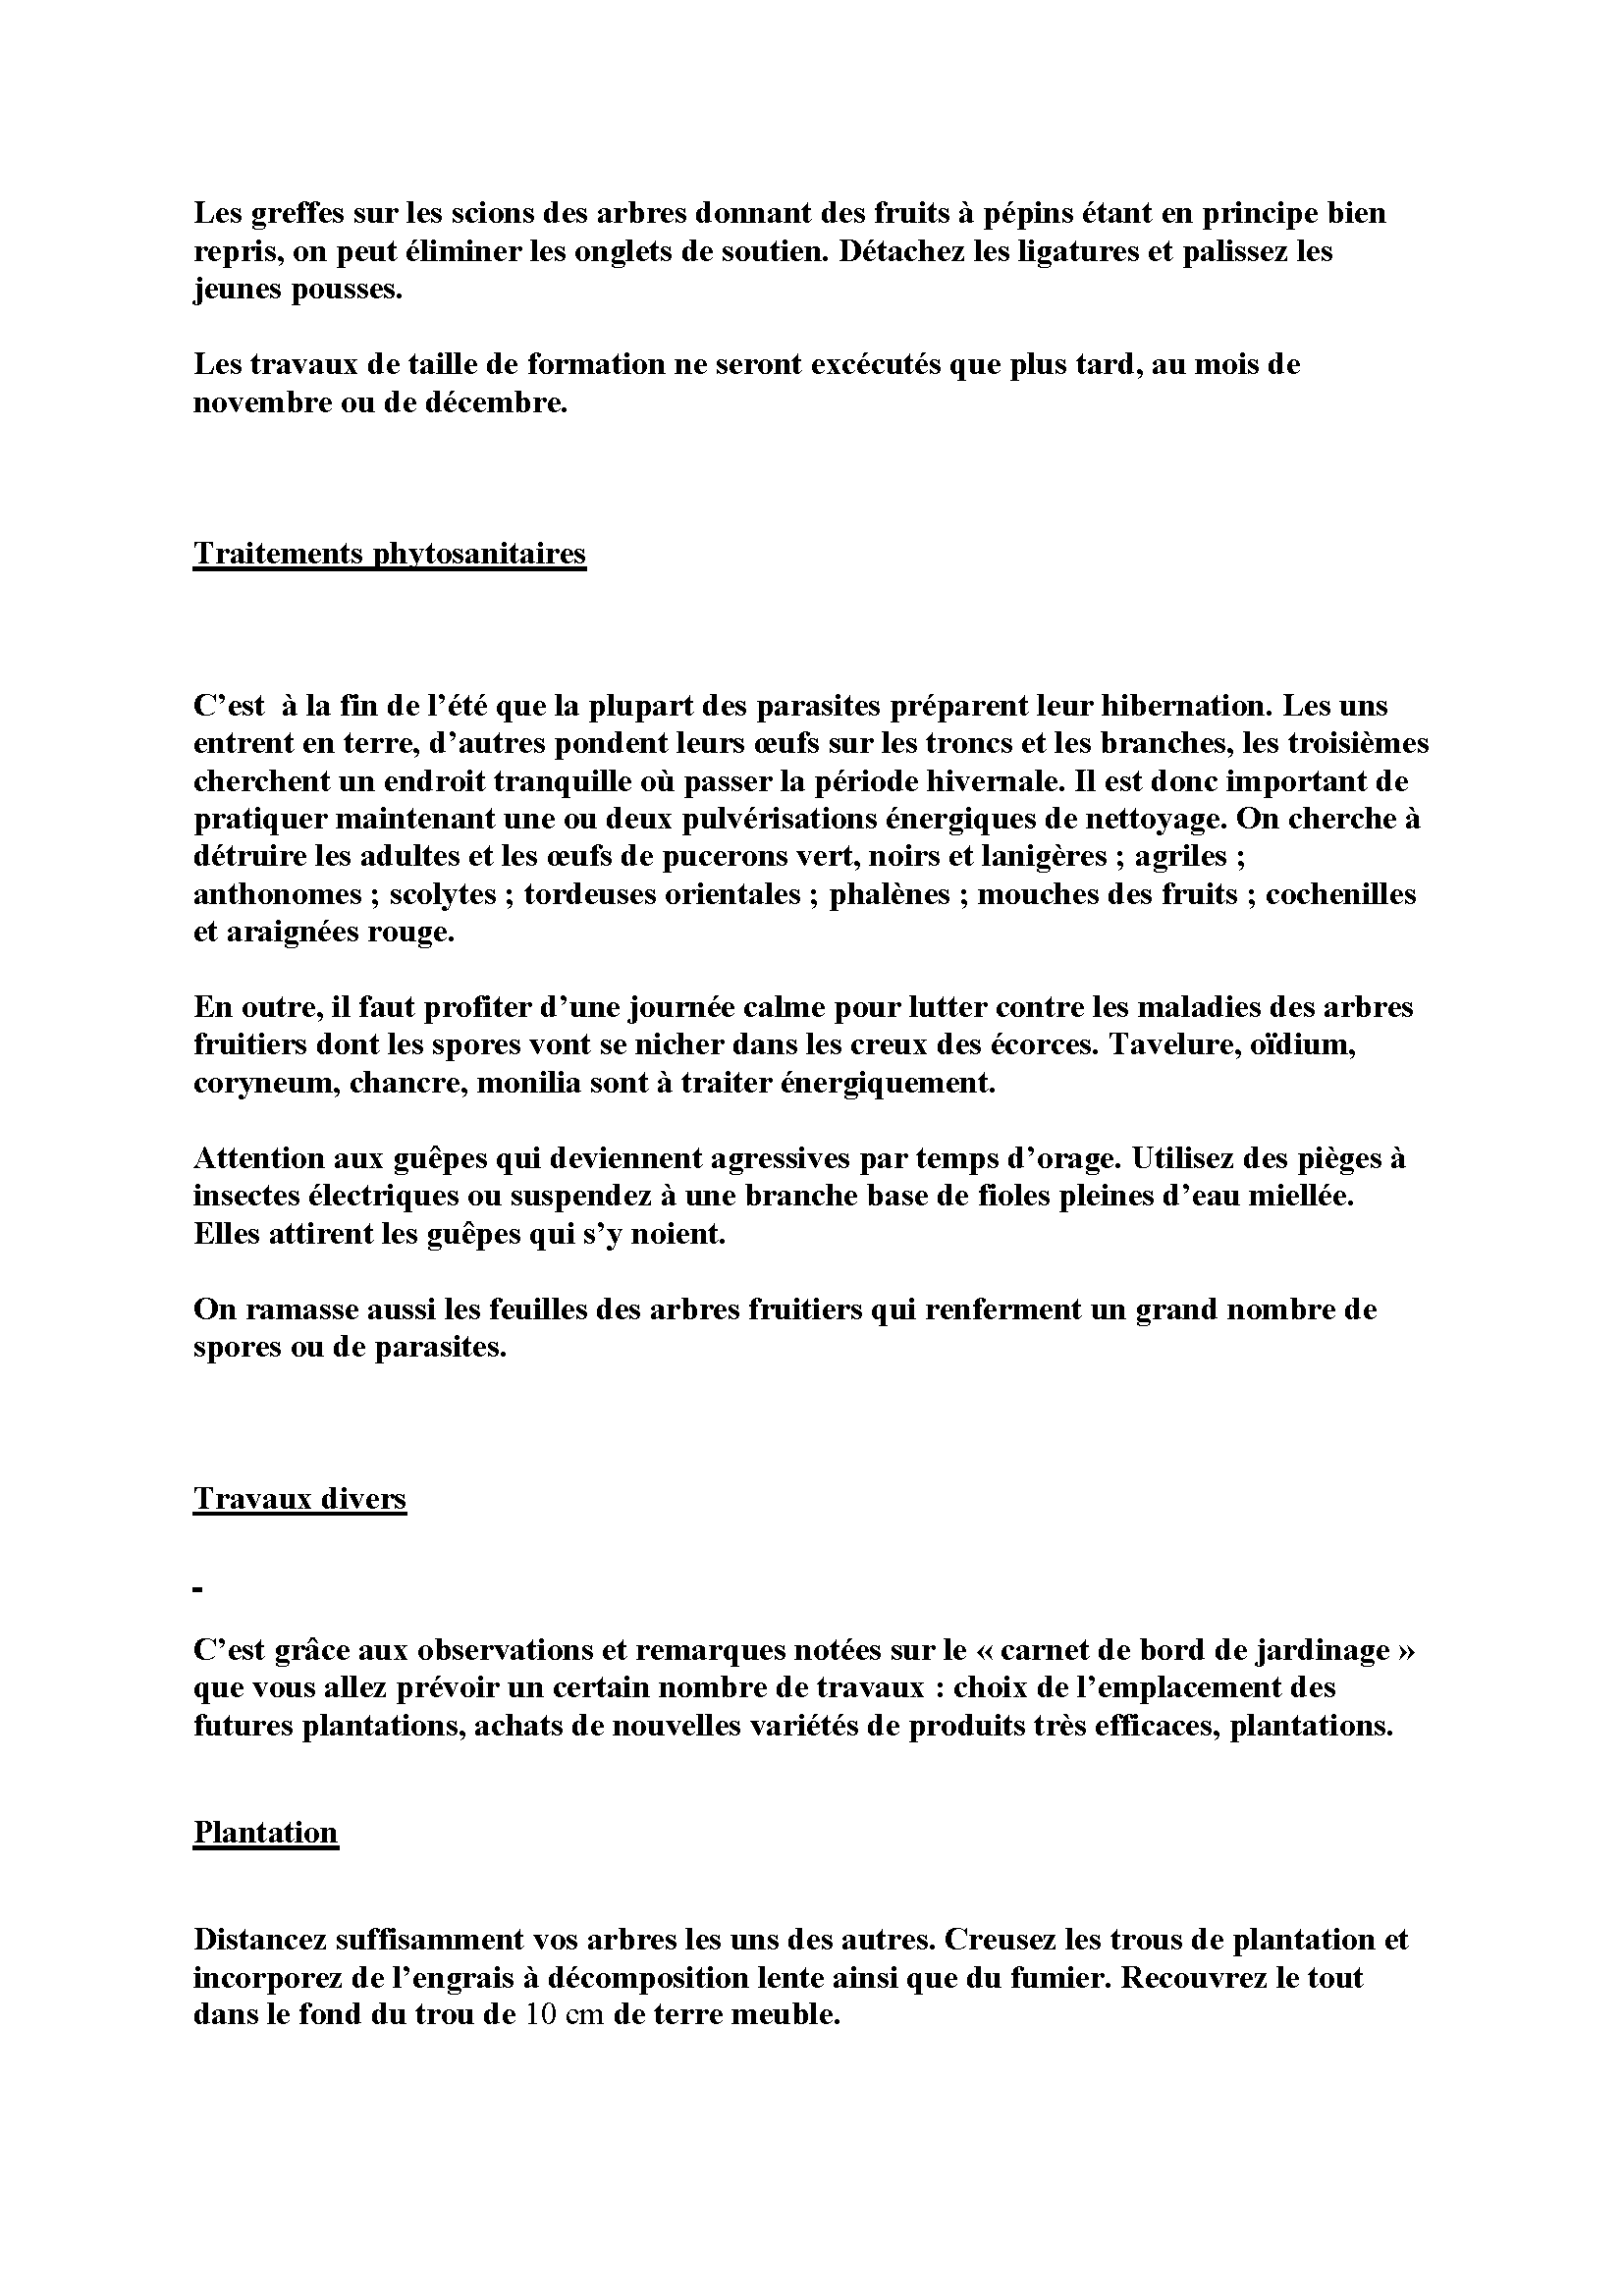 http://palife.free.fr/up/Travaux%20de%20septembre_Page_05.png